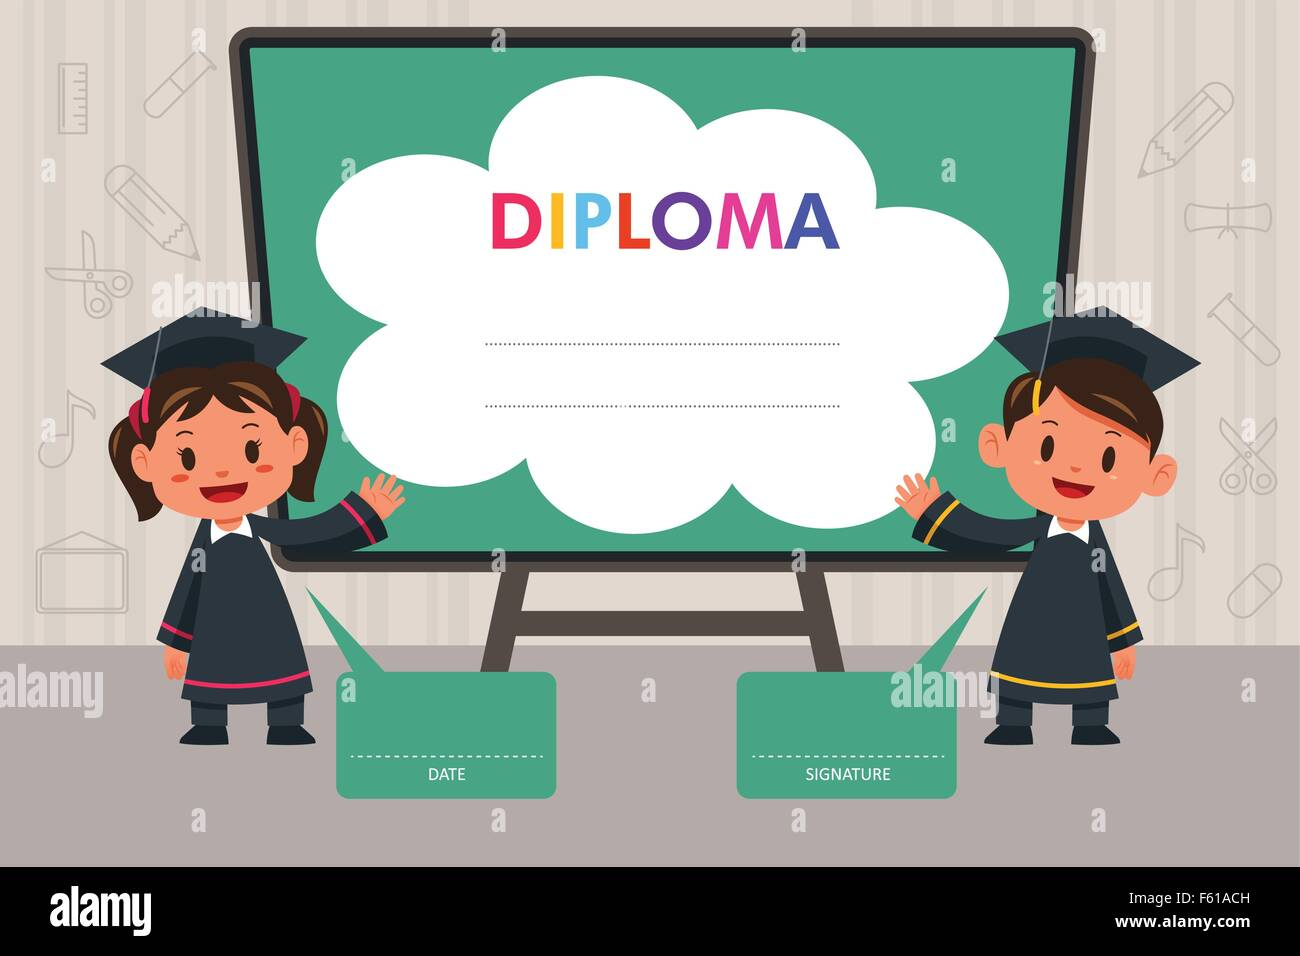 Template School Diploma Children Stock Photos & Template School ...